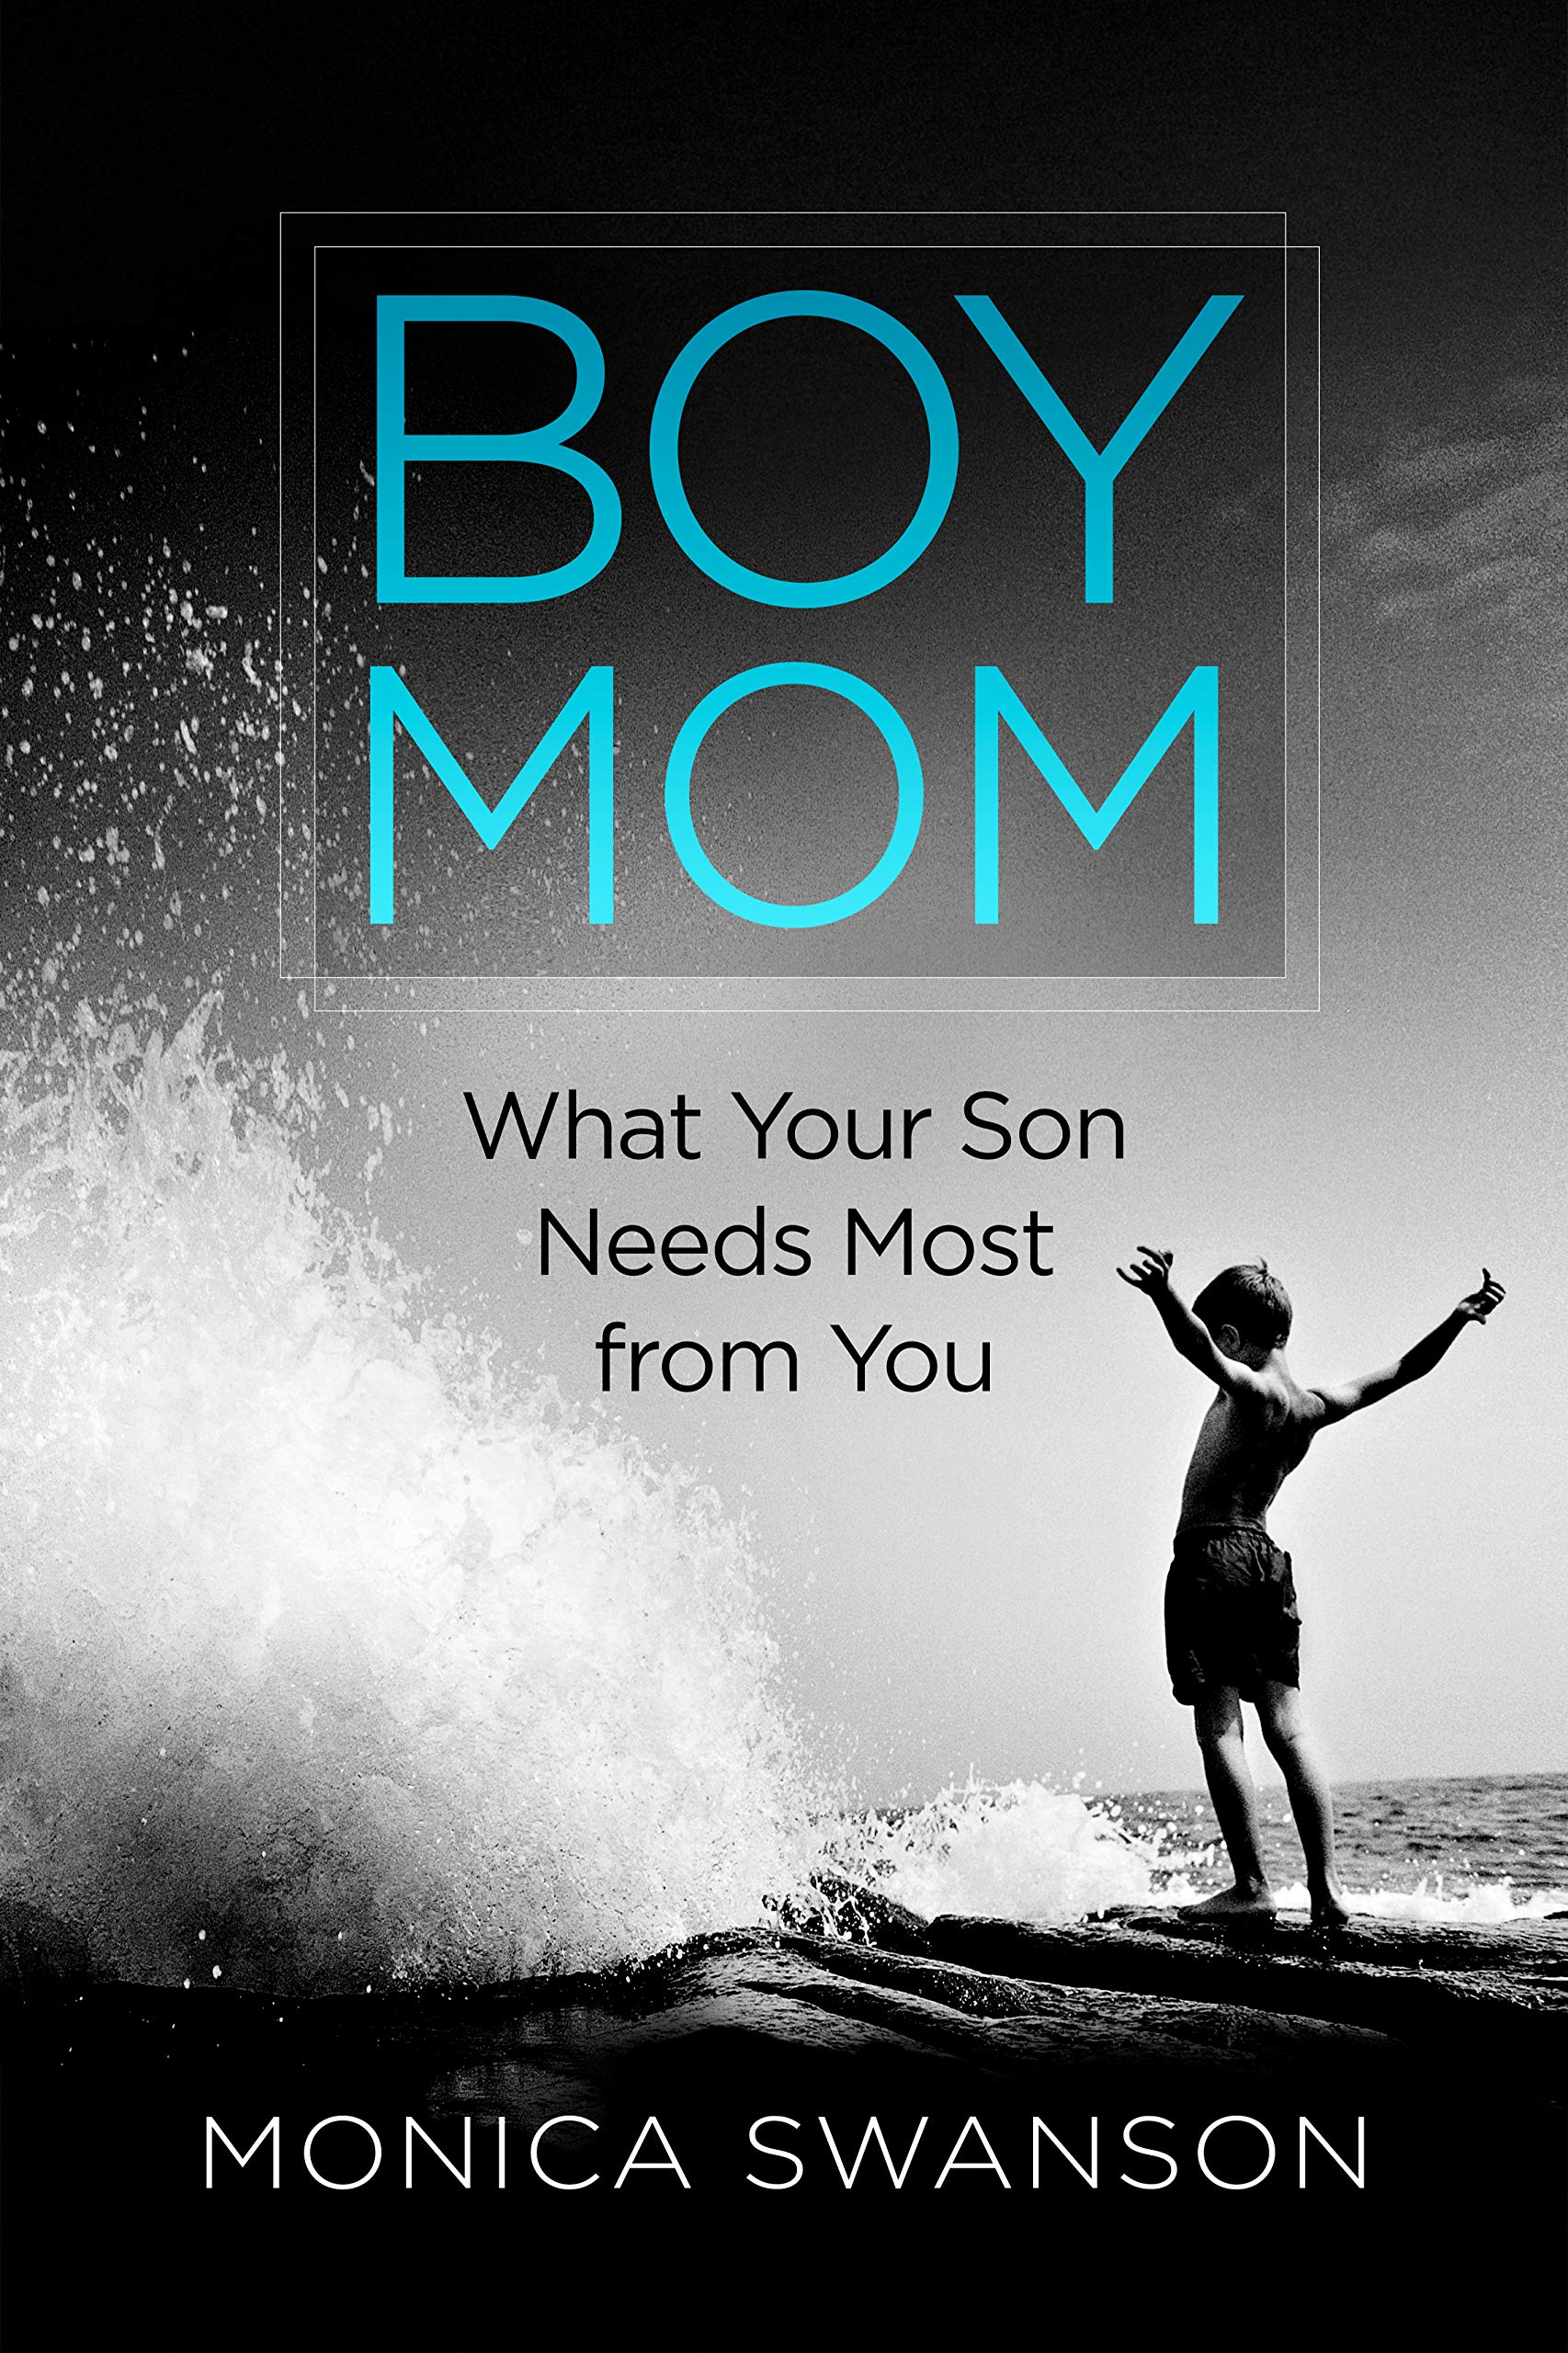 Boy Mom by Monica Swanson